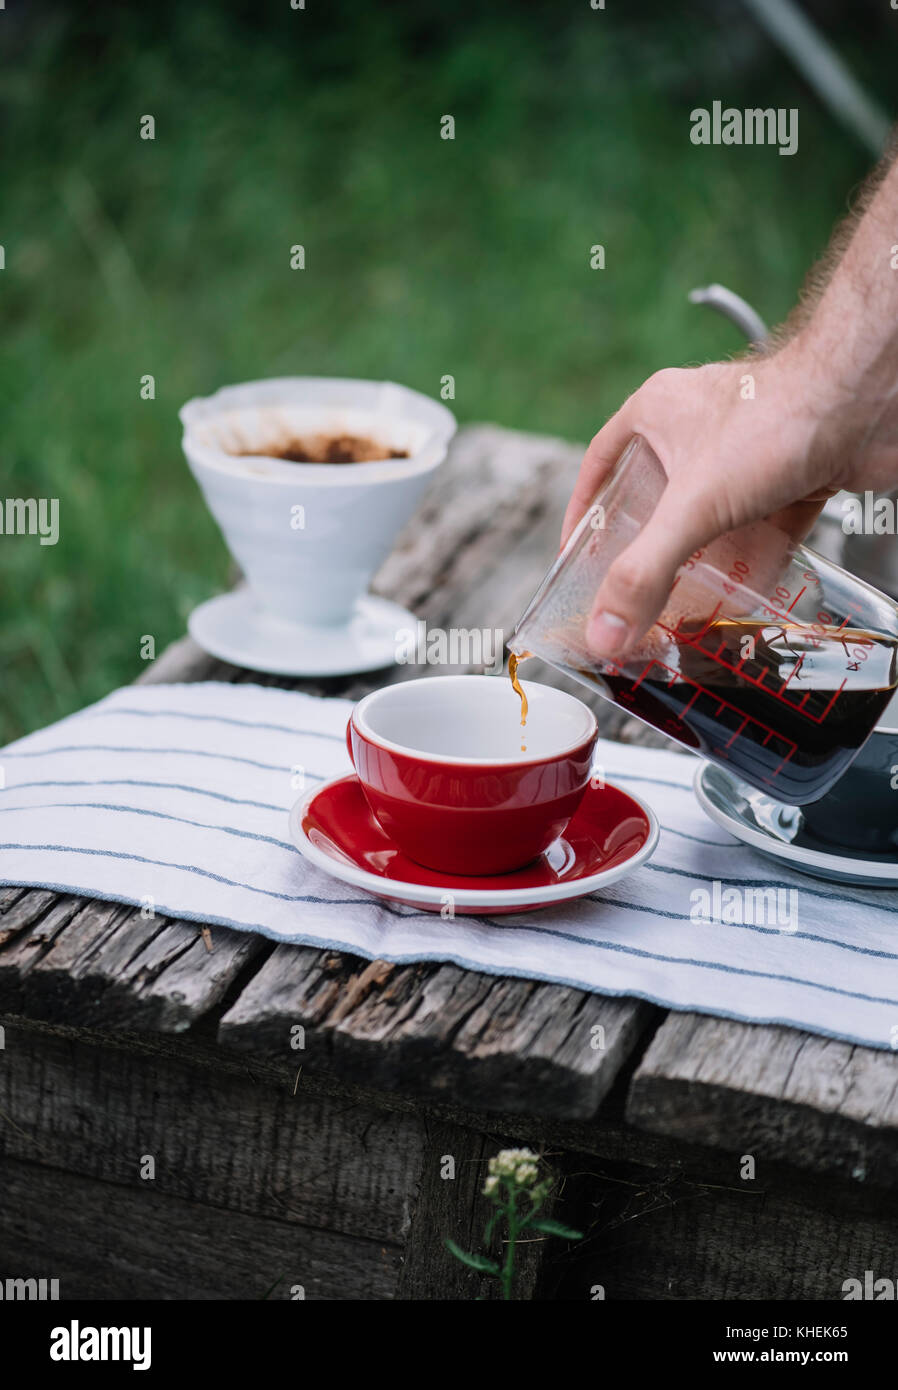 Delicious freshly brewed outdoor pour over coffee pouring into porcelain red coffee cup - Stock Image